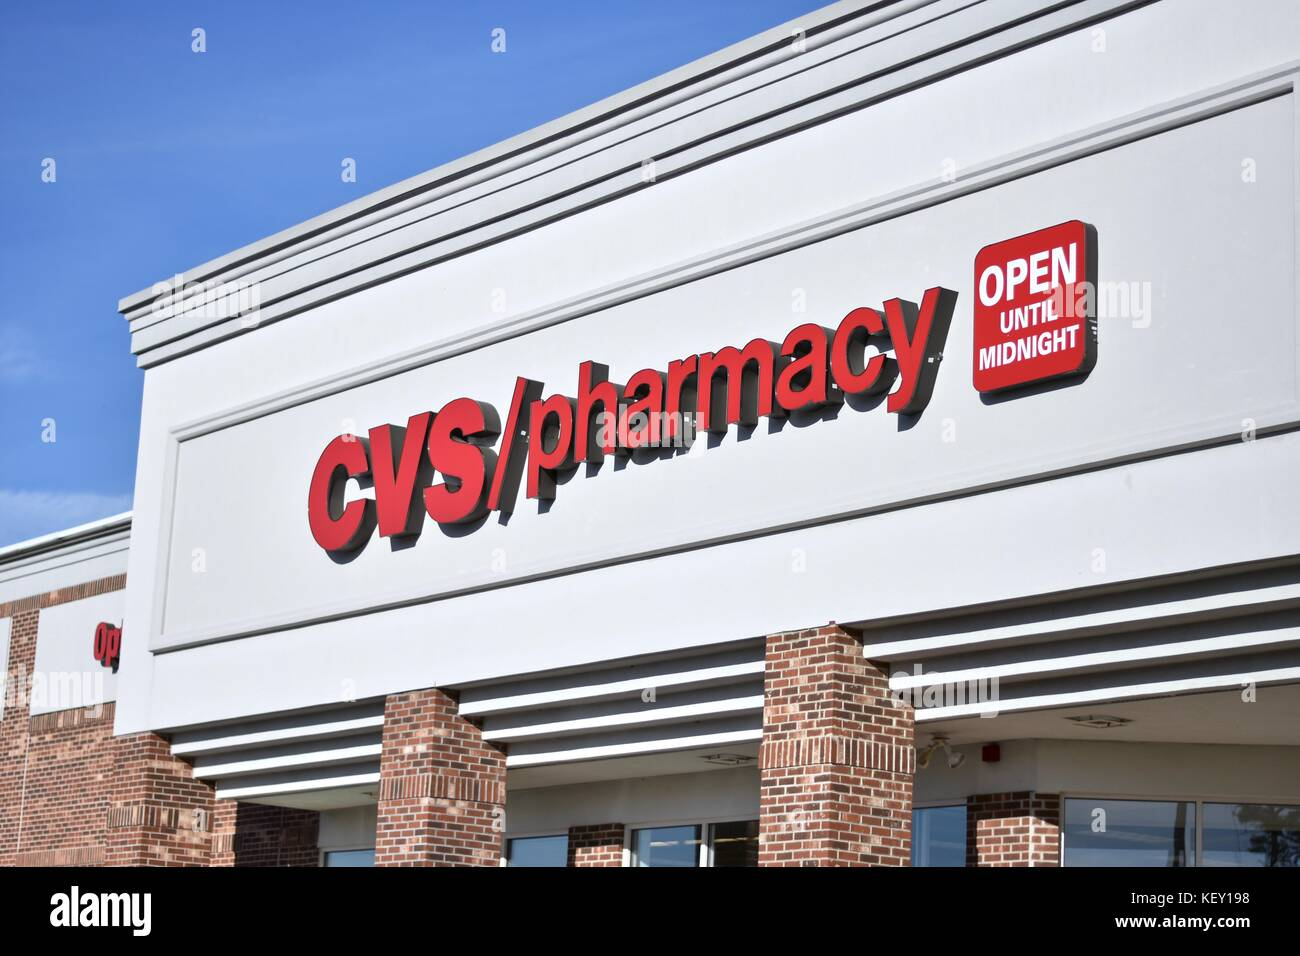 Cvs Store Sign Stock Photos & Cvs Store Sign Stock Images - Alamy